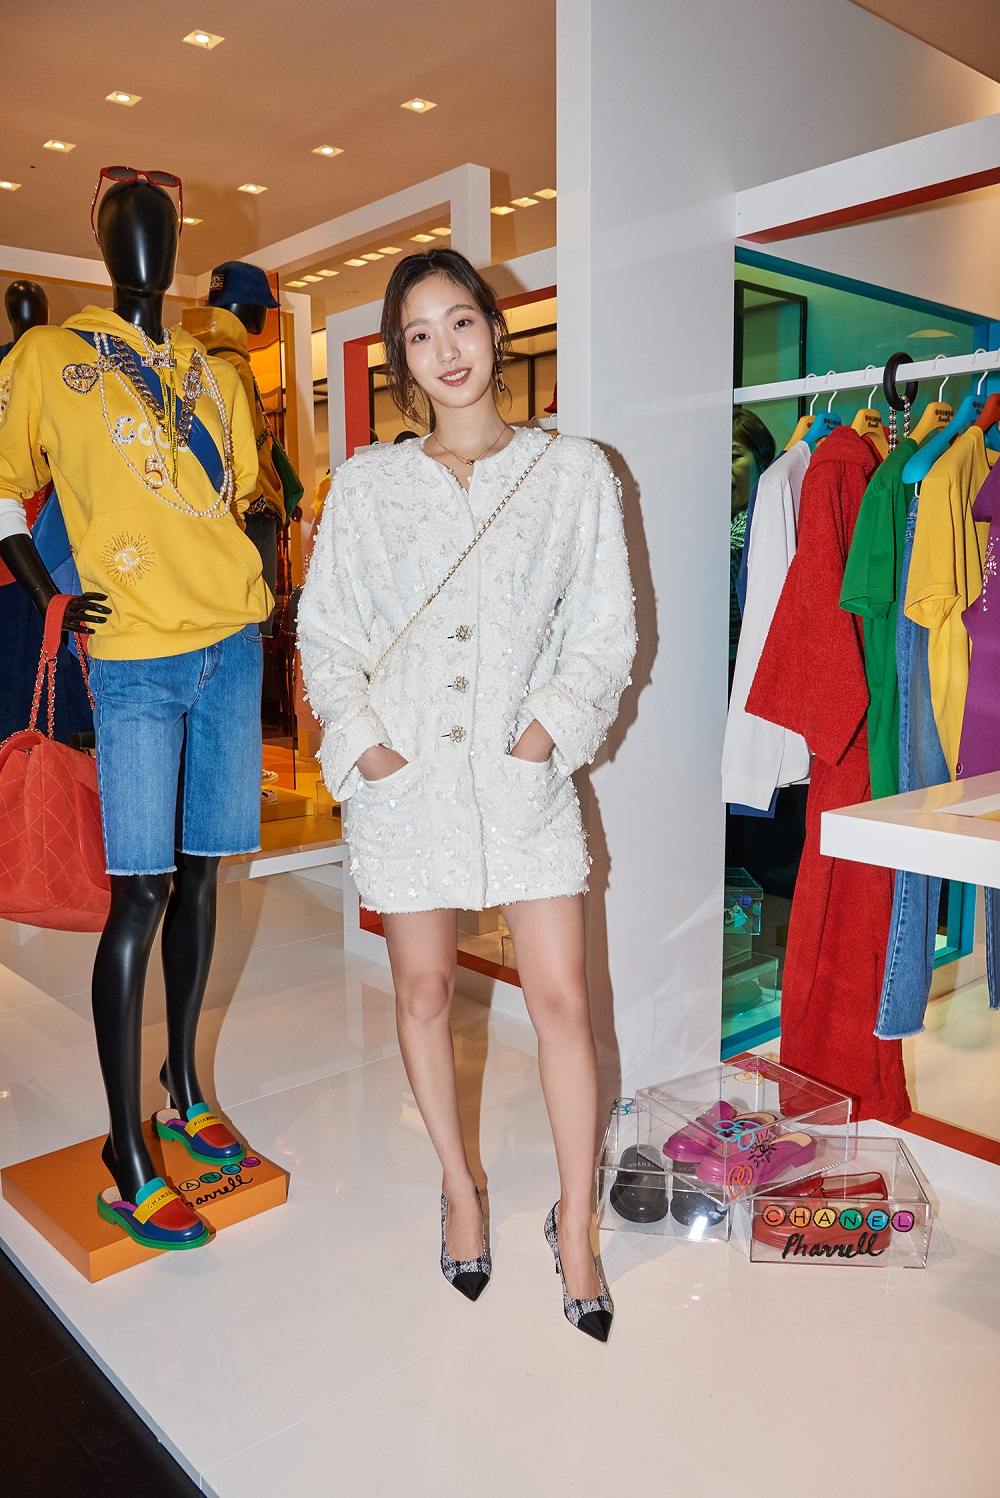 Go-eun Kim wore a white tweed embroidered dress (look 20 from the Spring-Summer 2019 Ready-to-Wear collection), CHANEL accessories, bag and shoes. She also wore